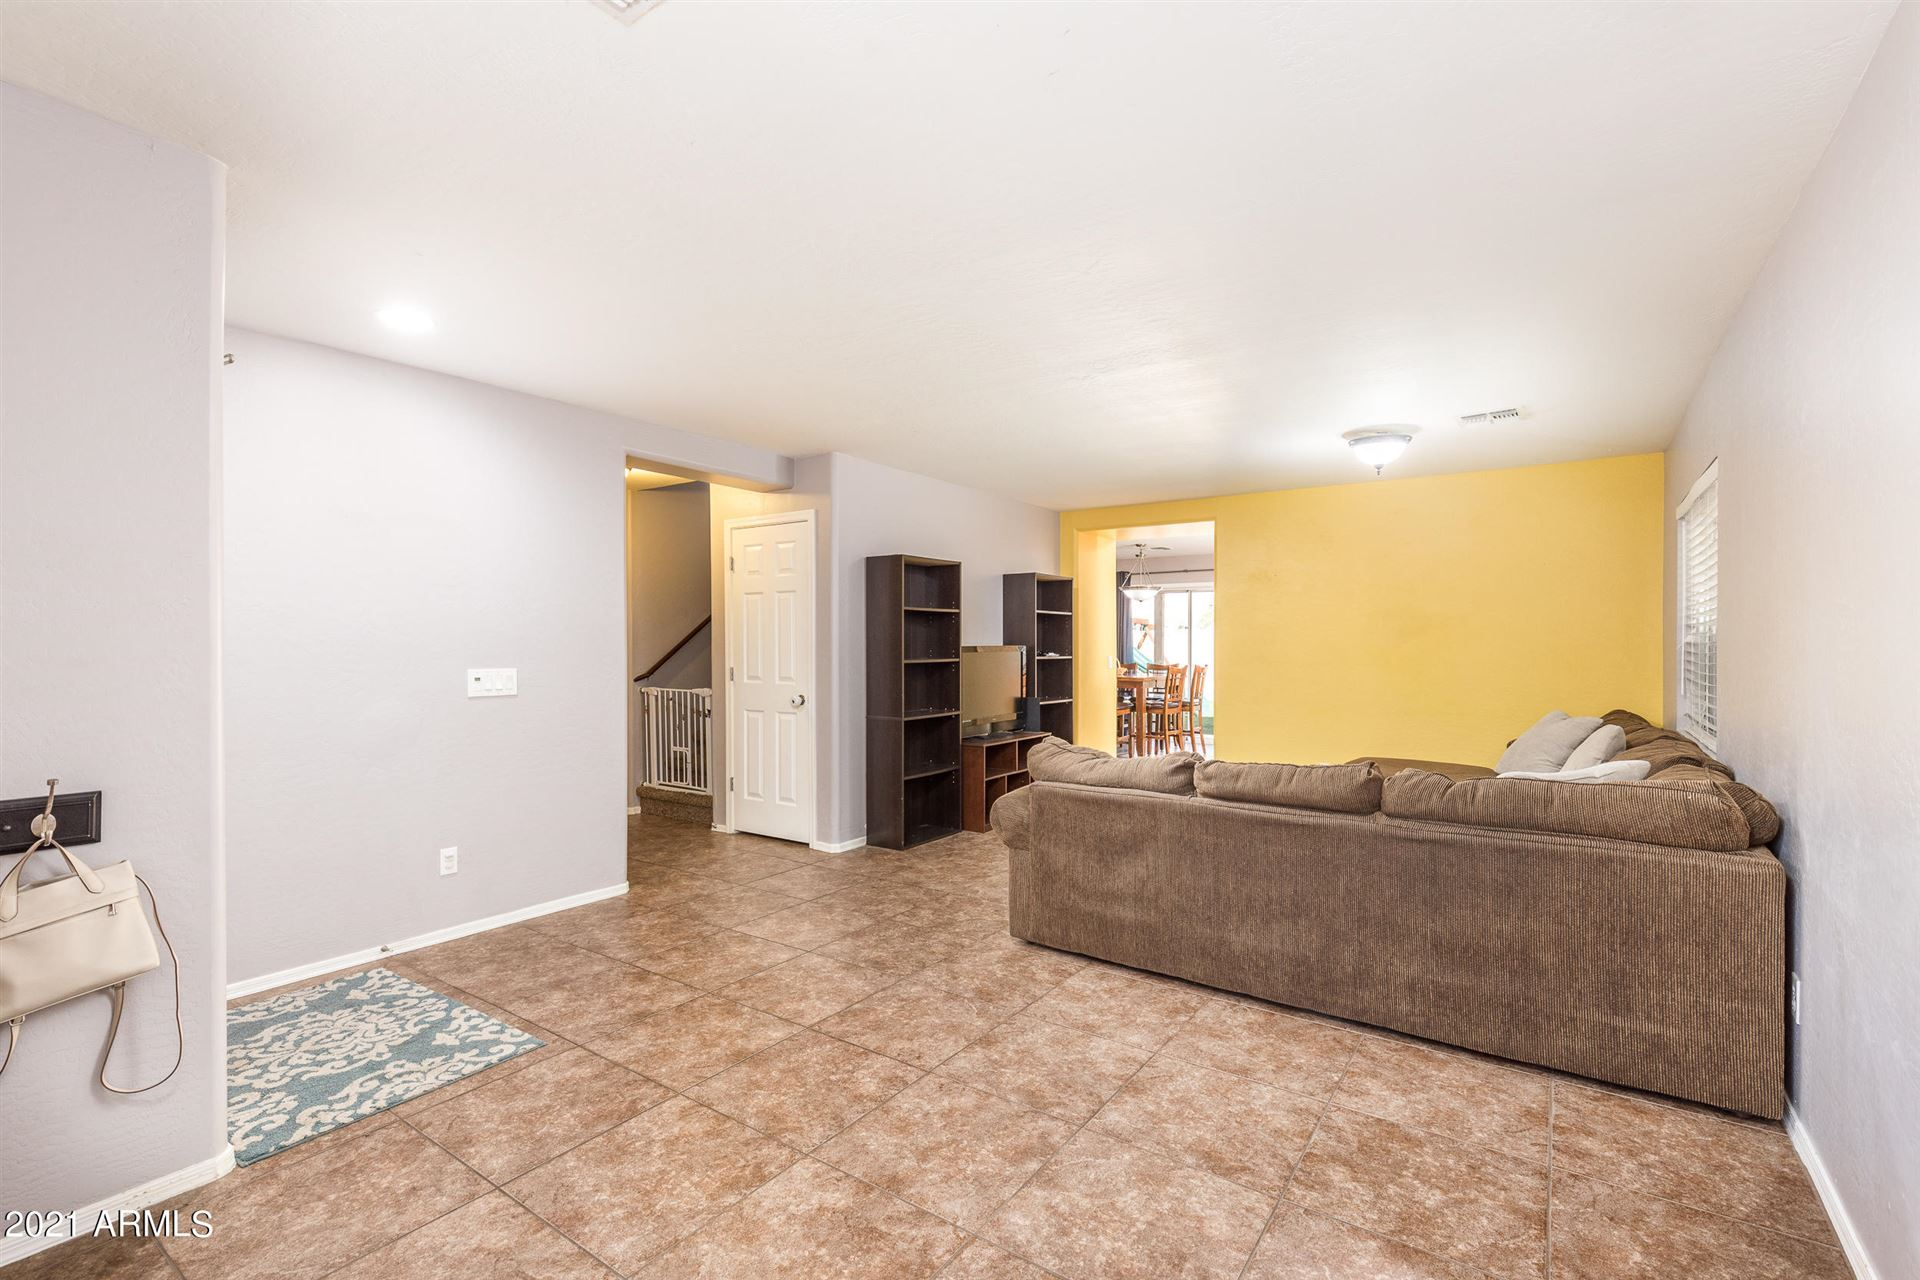 Photo of 11590 W HACKBARTH Drive, Youngtown, AZ 85363 (MLS # 6198803)